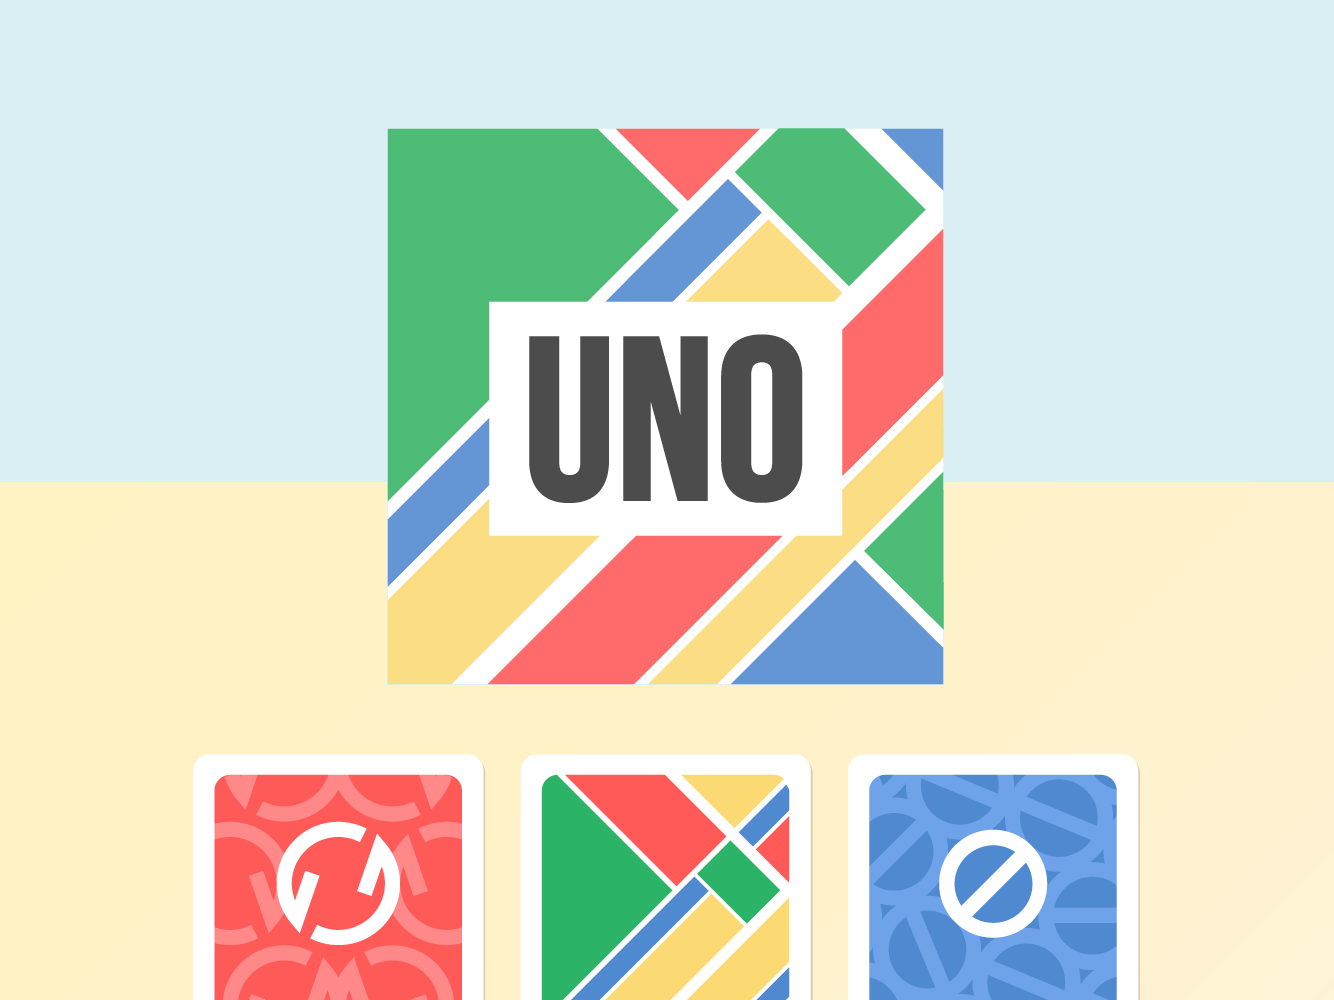 UNO (card game) by Thomas Gueudré on Dribbble